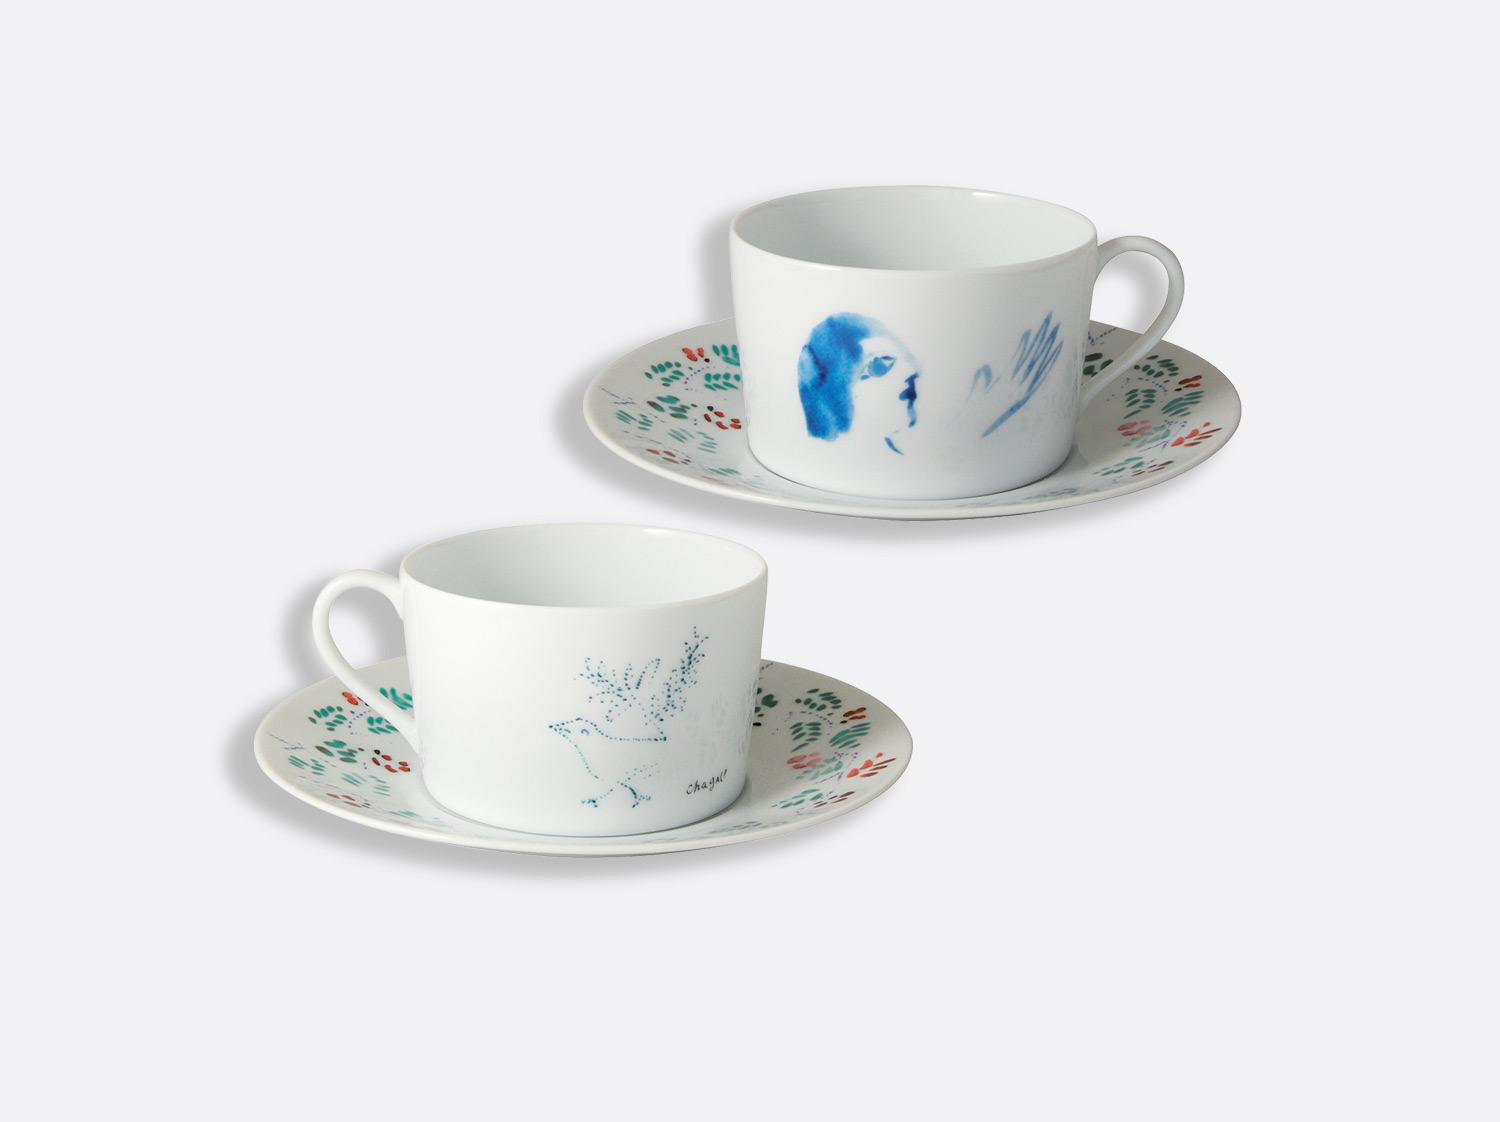 Coffret de 2 tasses et soucoupes déjeuner assorties en porcelaine de la collection Collection Marc chagall Bernardaud